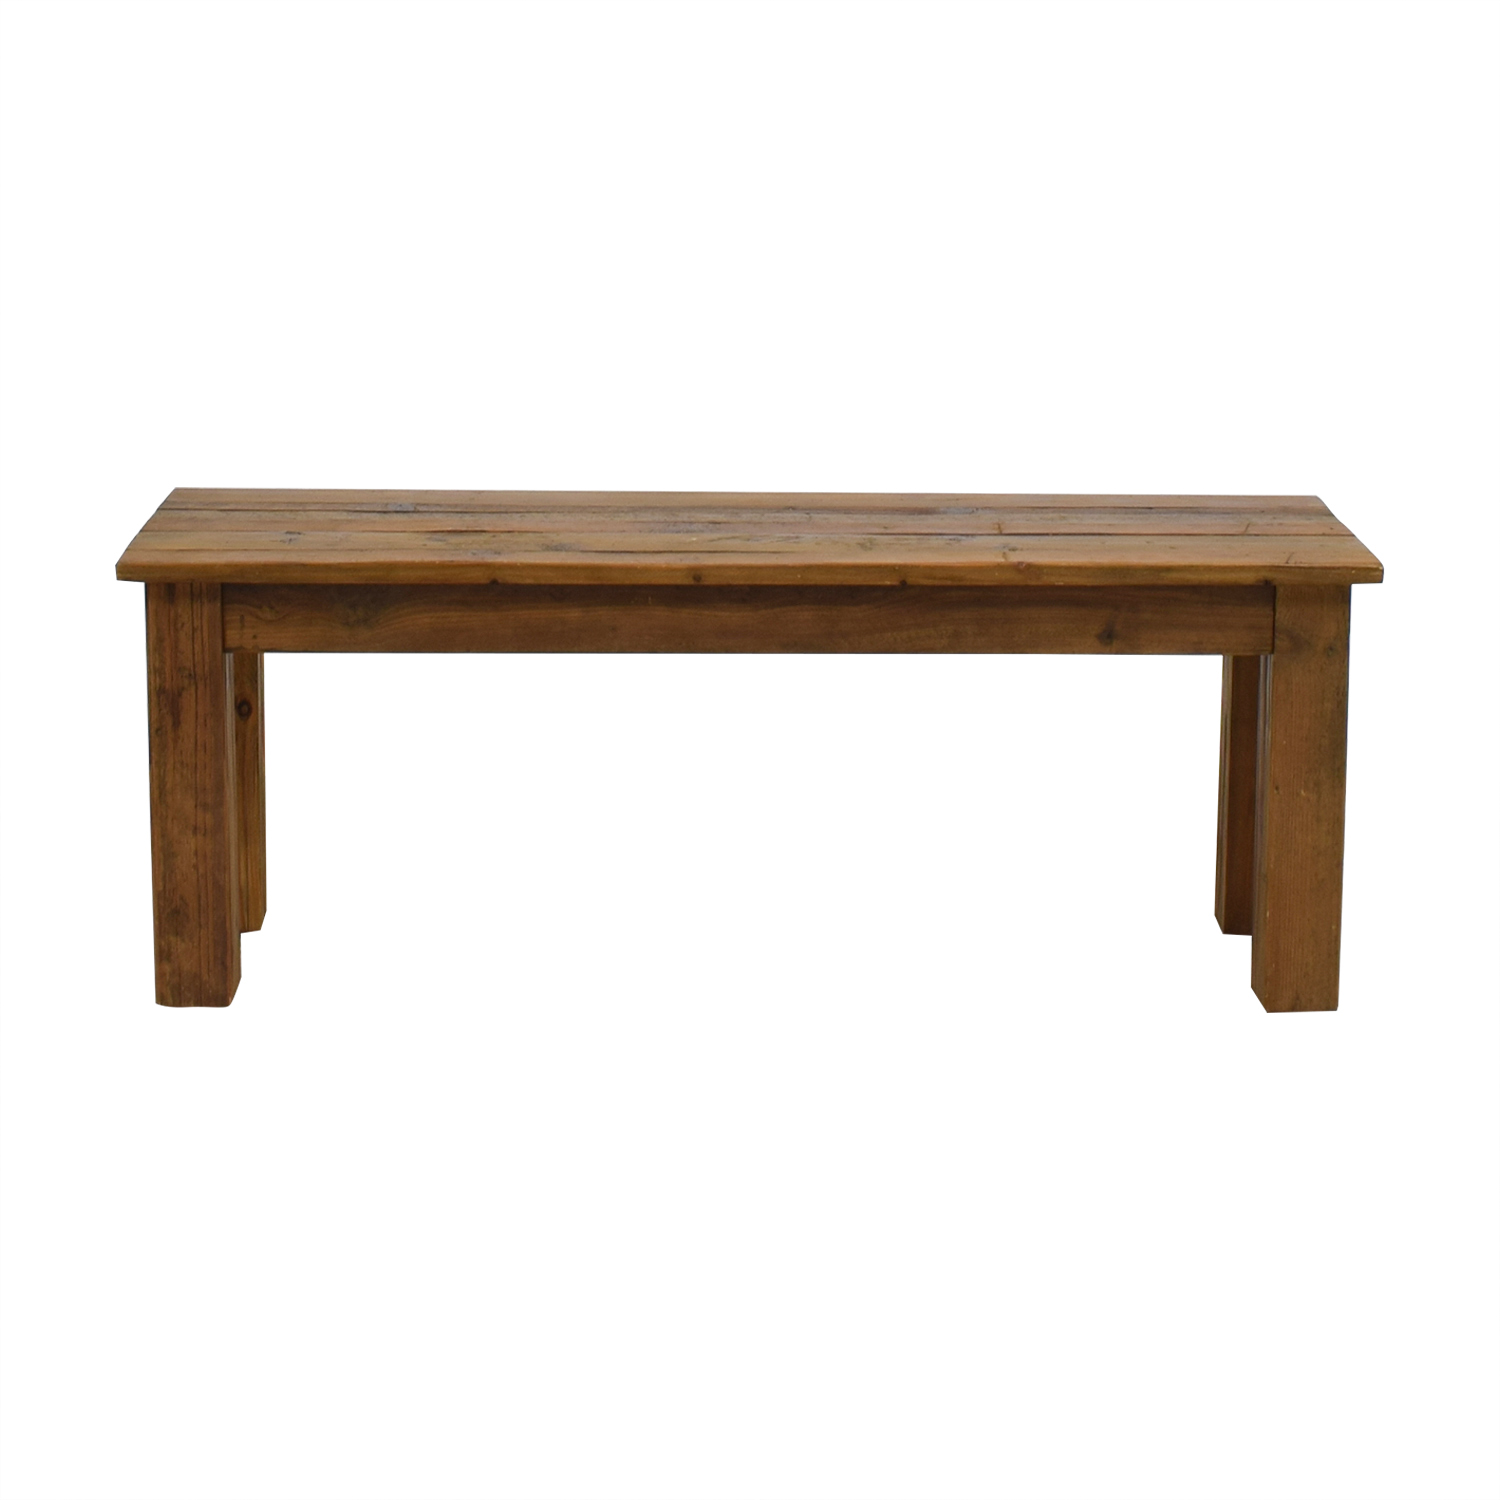 buy West Elm Reclaimed Wood Bench West Elm Benches